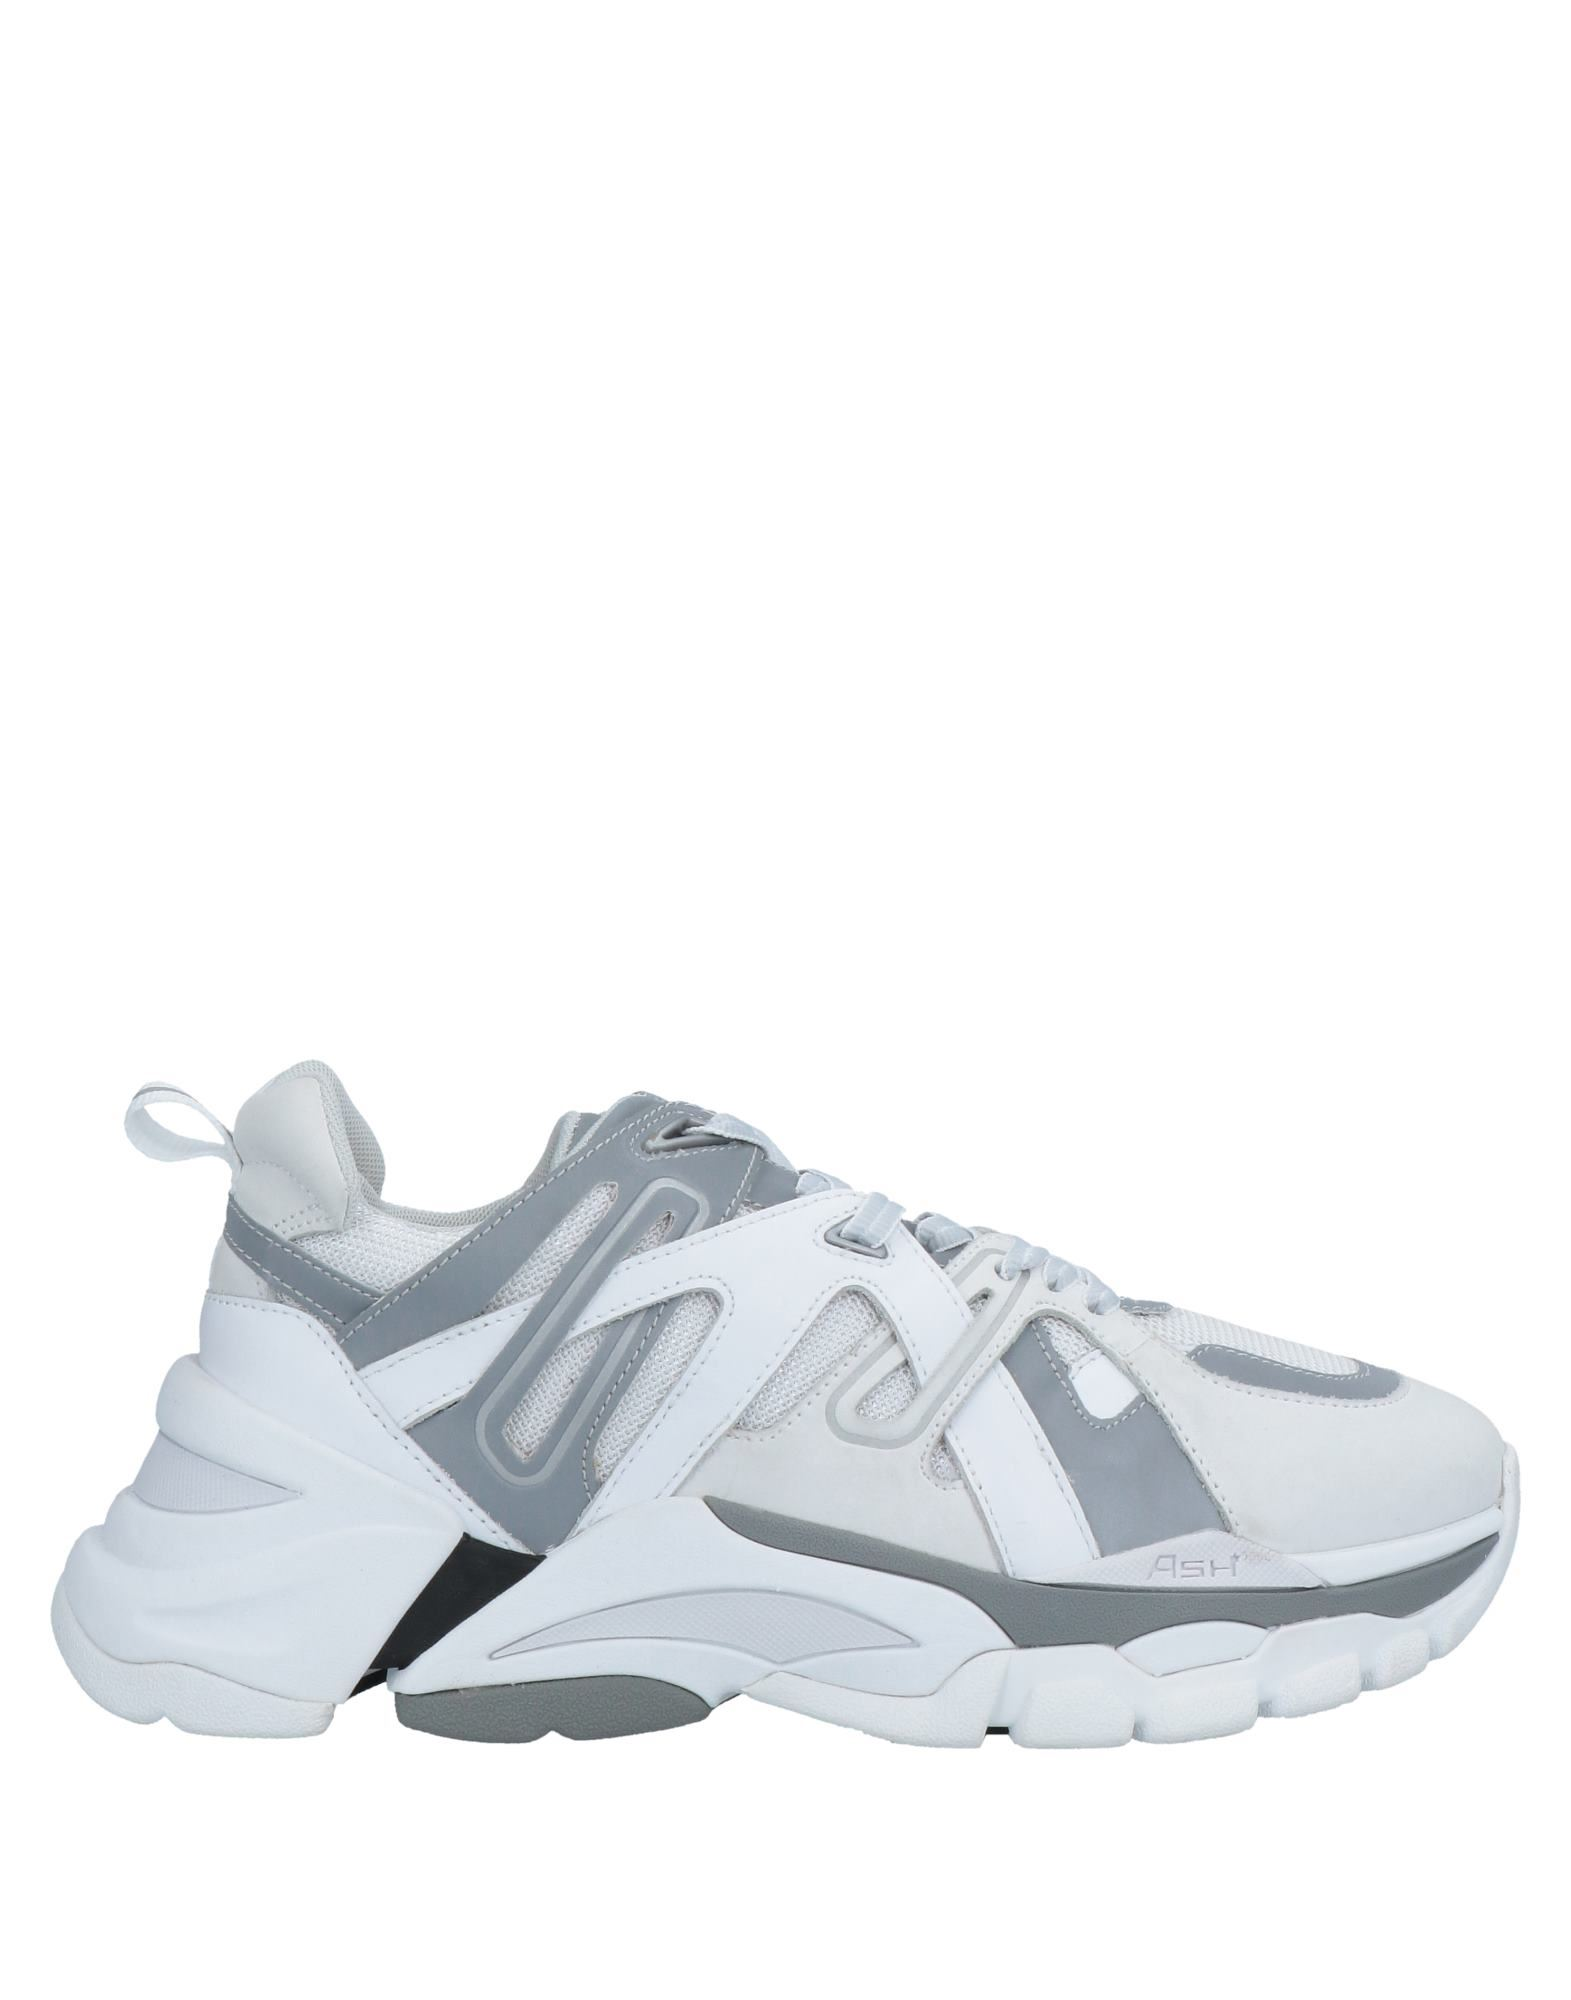 Ash Free Sneakers In White And Gray